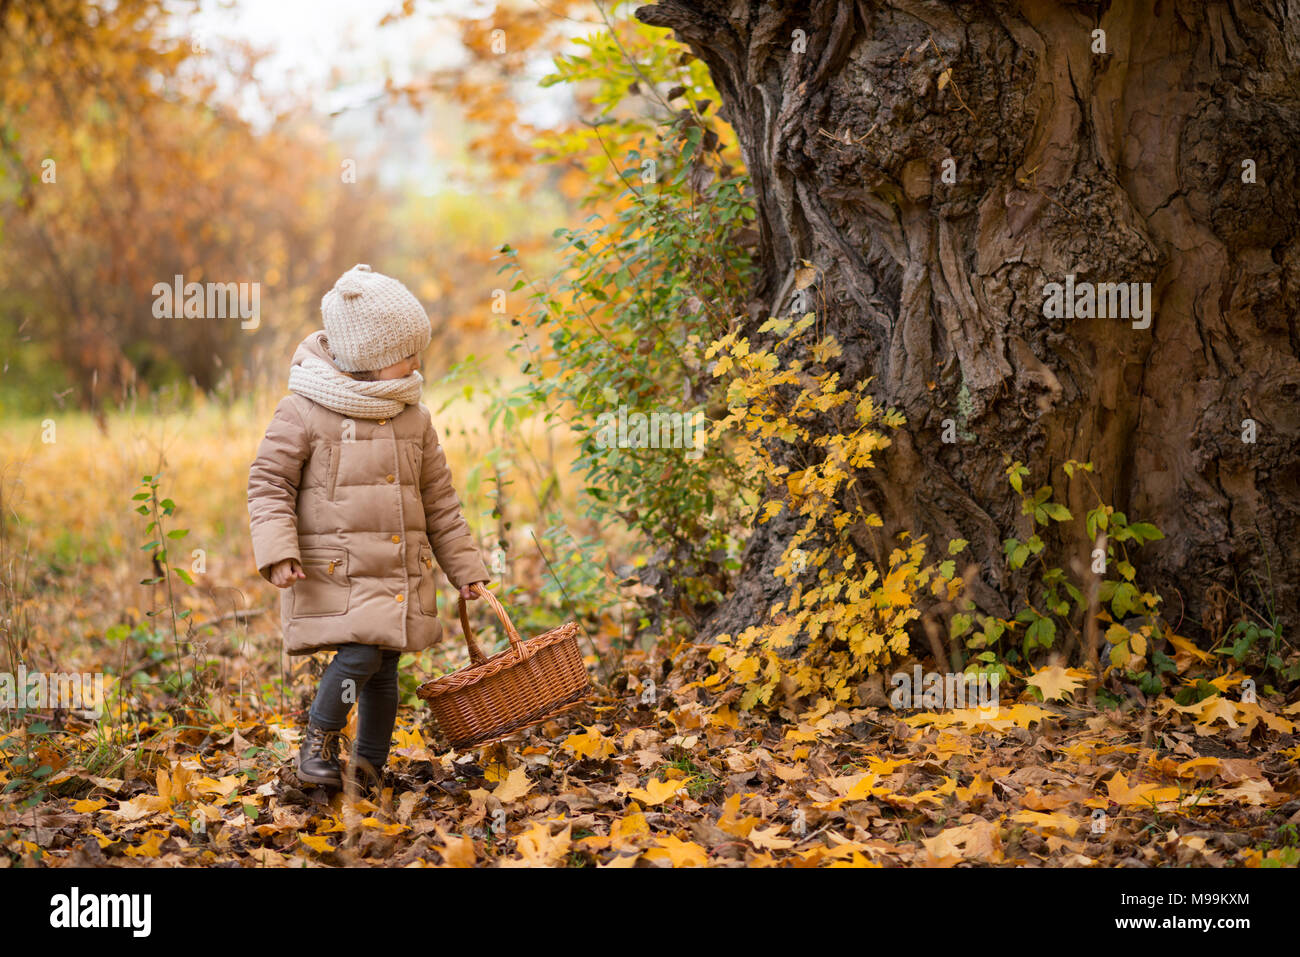 Girl collects chestnuts or mushrooms in a basket in the autumn forest - Stock Image